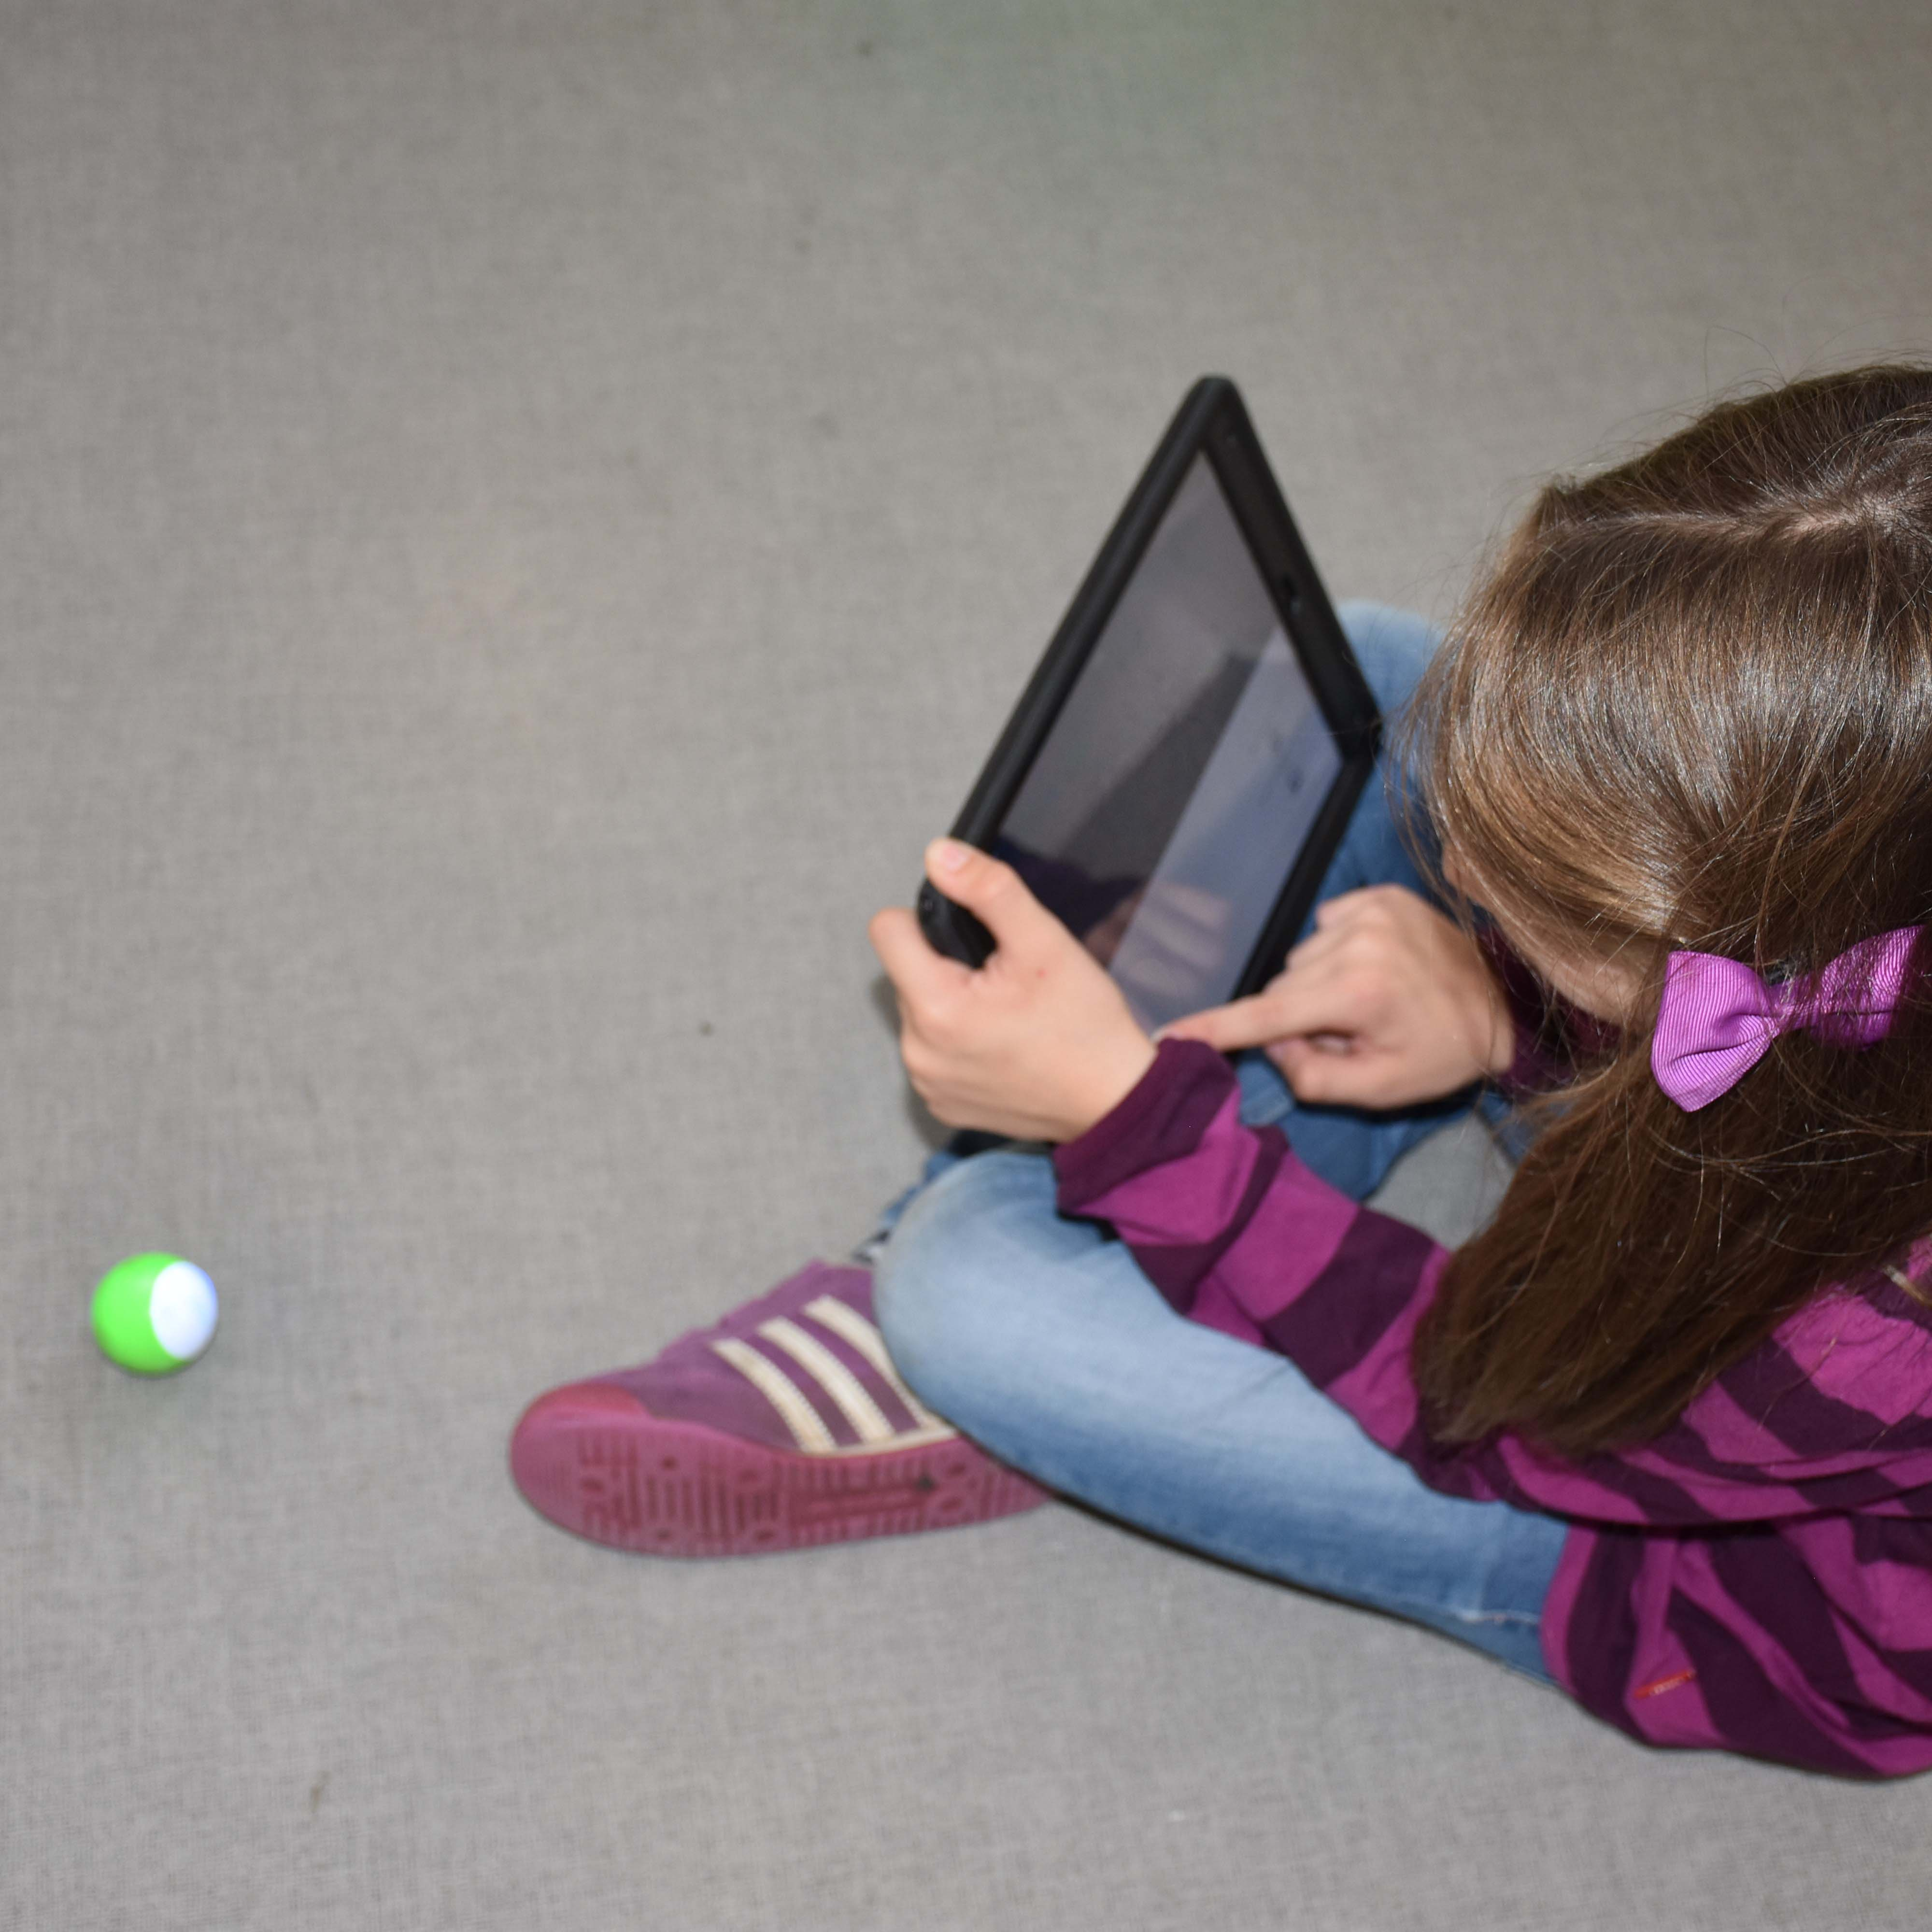 Coding Club Sphero ball